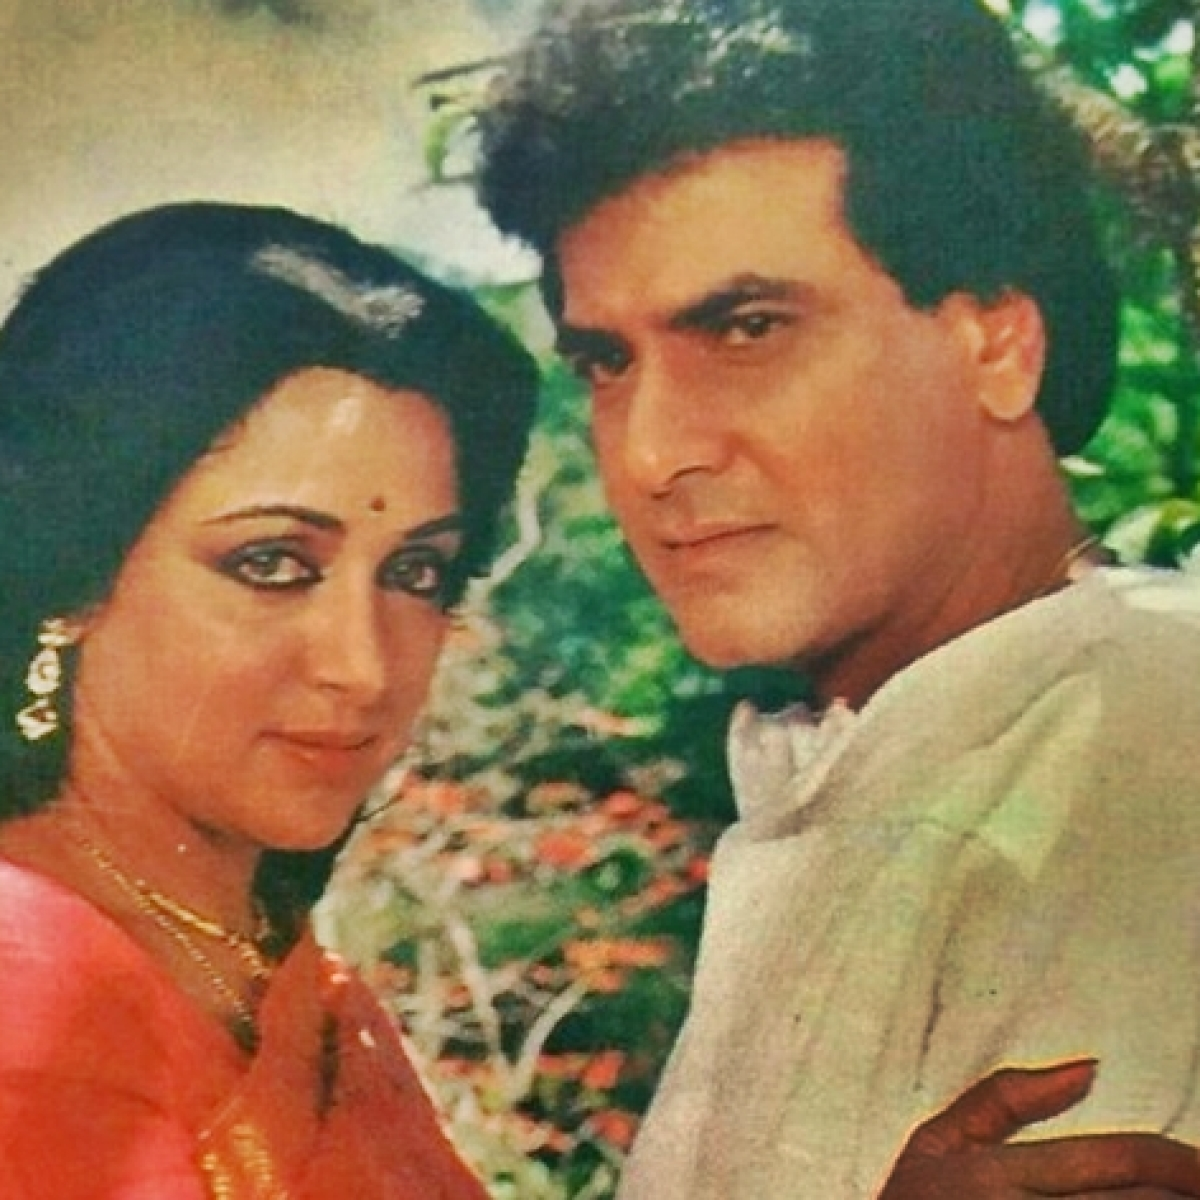 When Dharmendra, Shobha gatecrashed Hema Malini and Jeetendra's secret wedding!